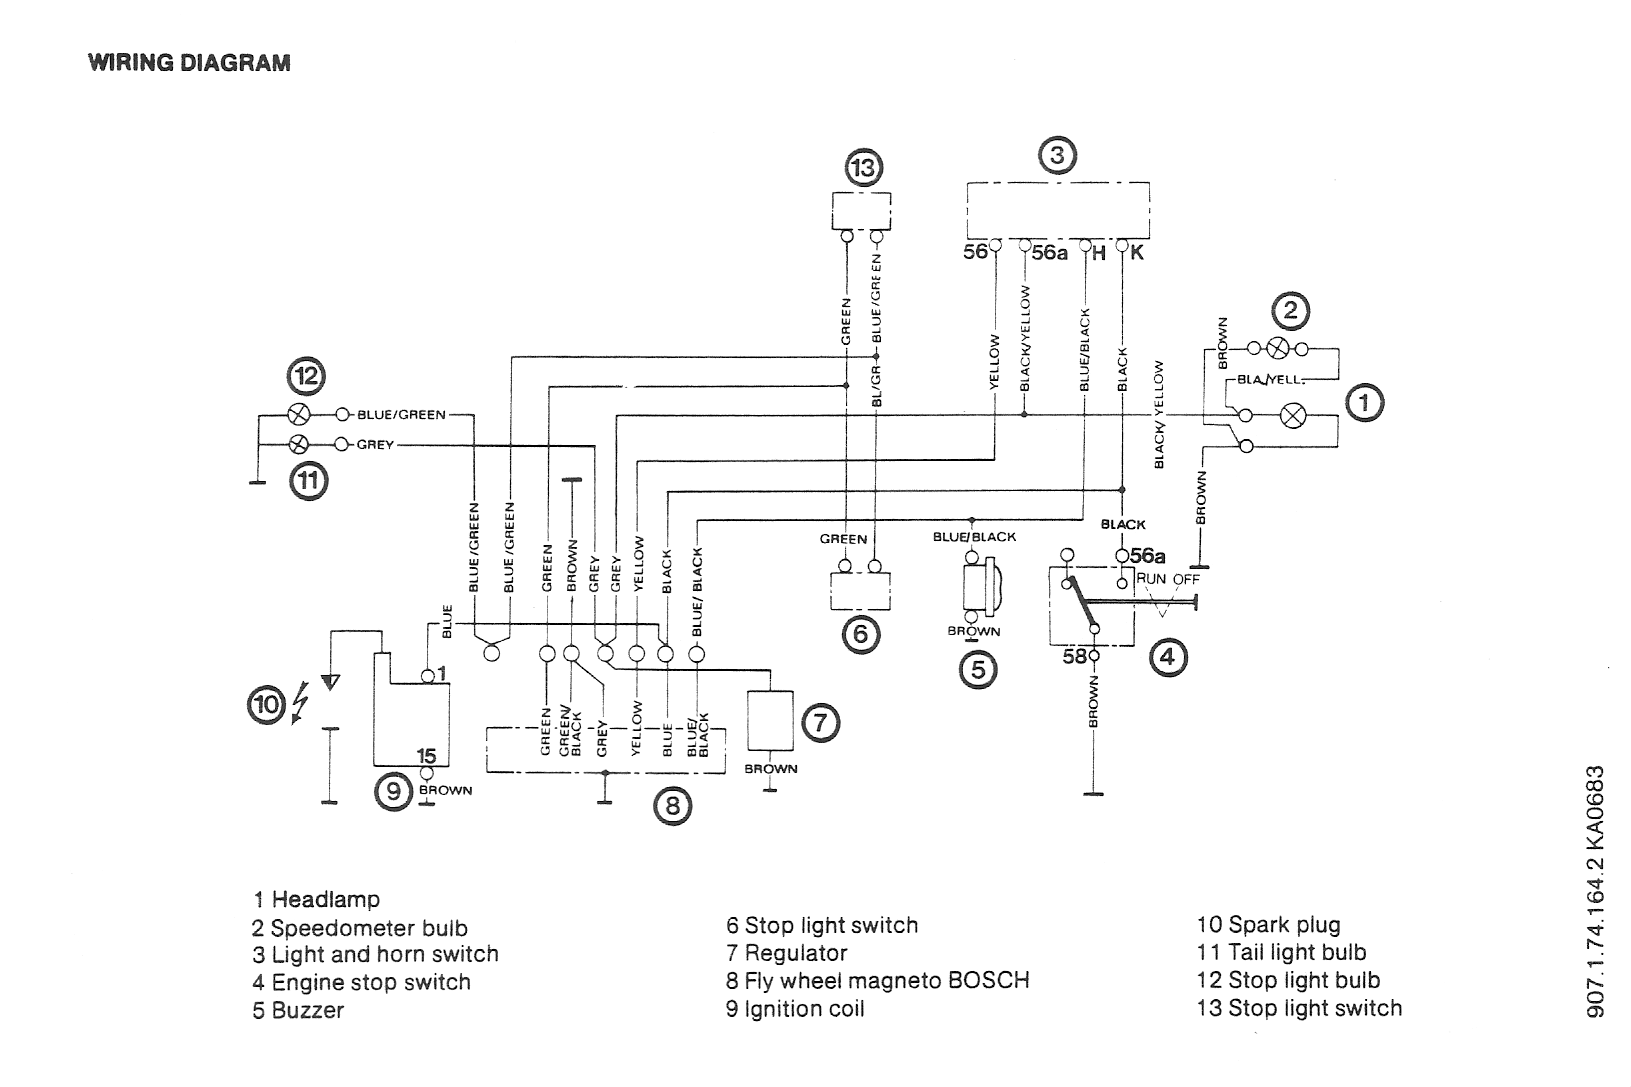 Puch Mini Maxi wiring diagram.png